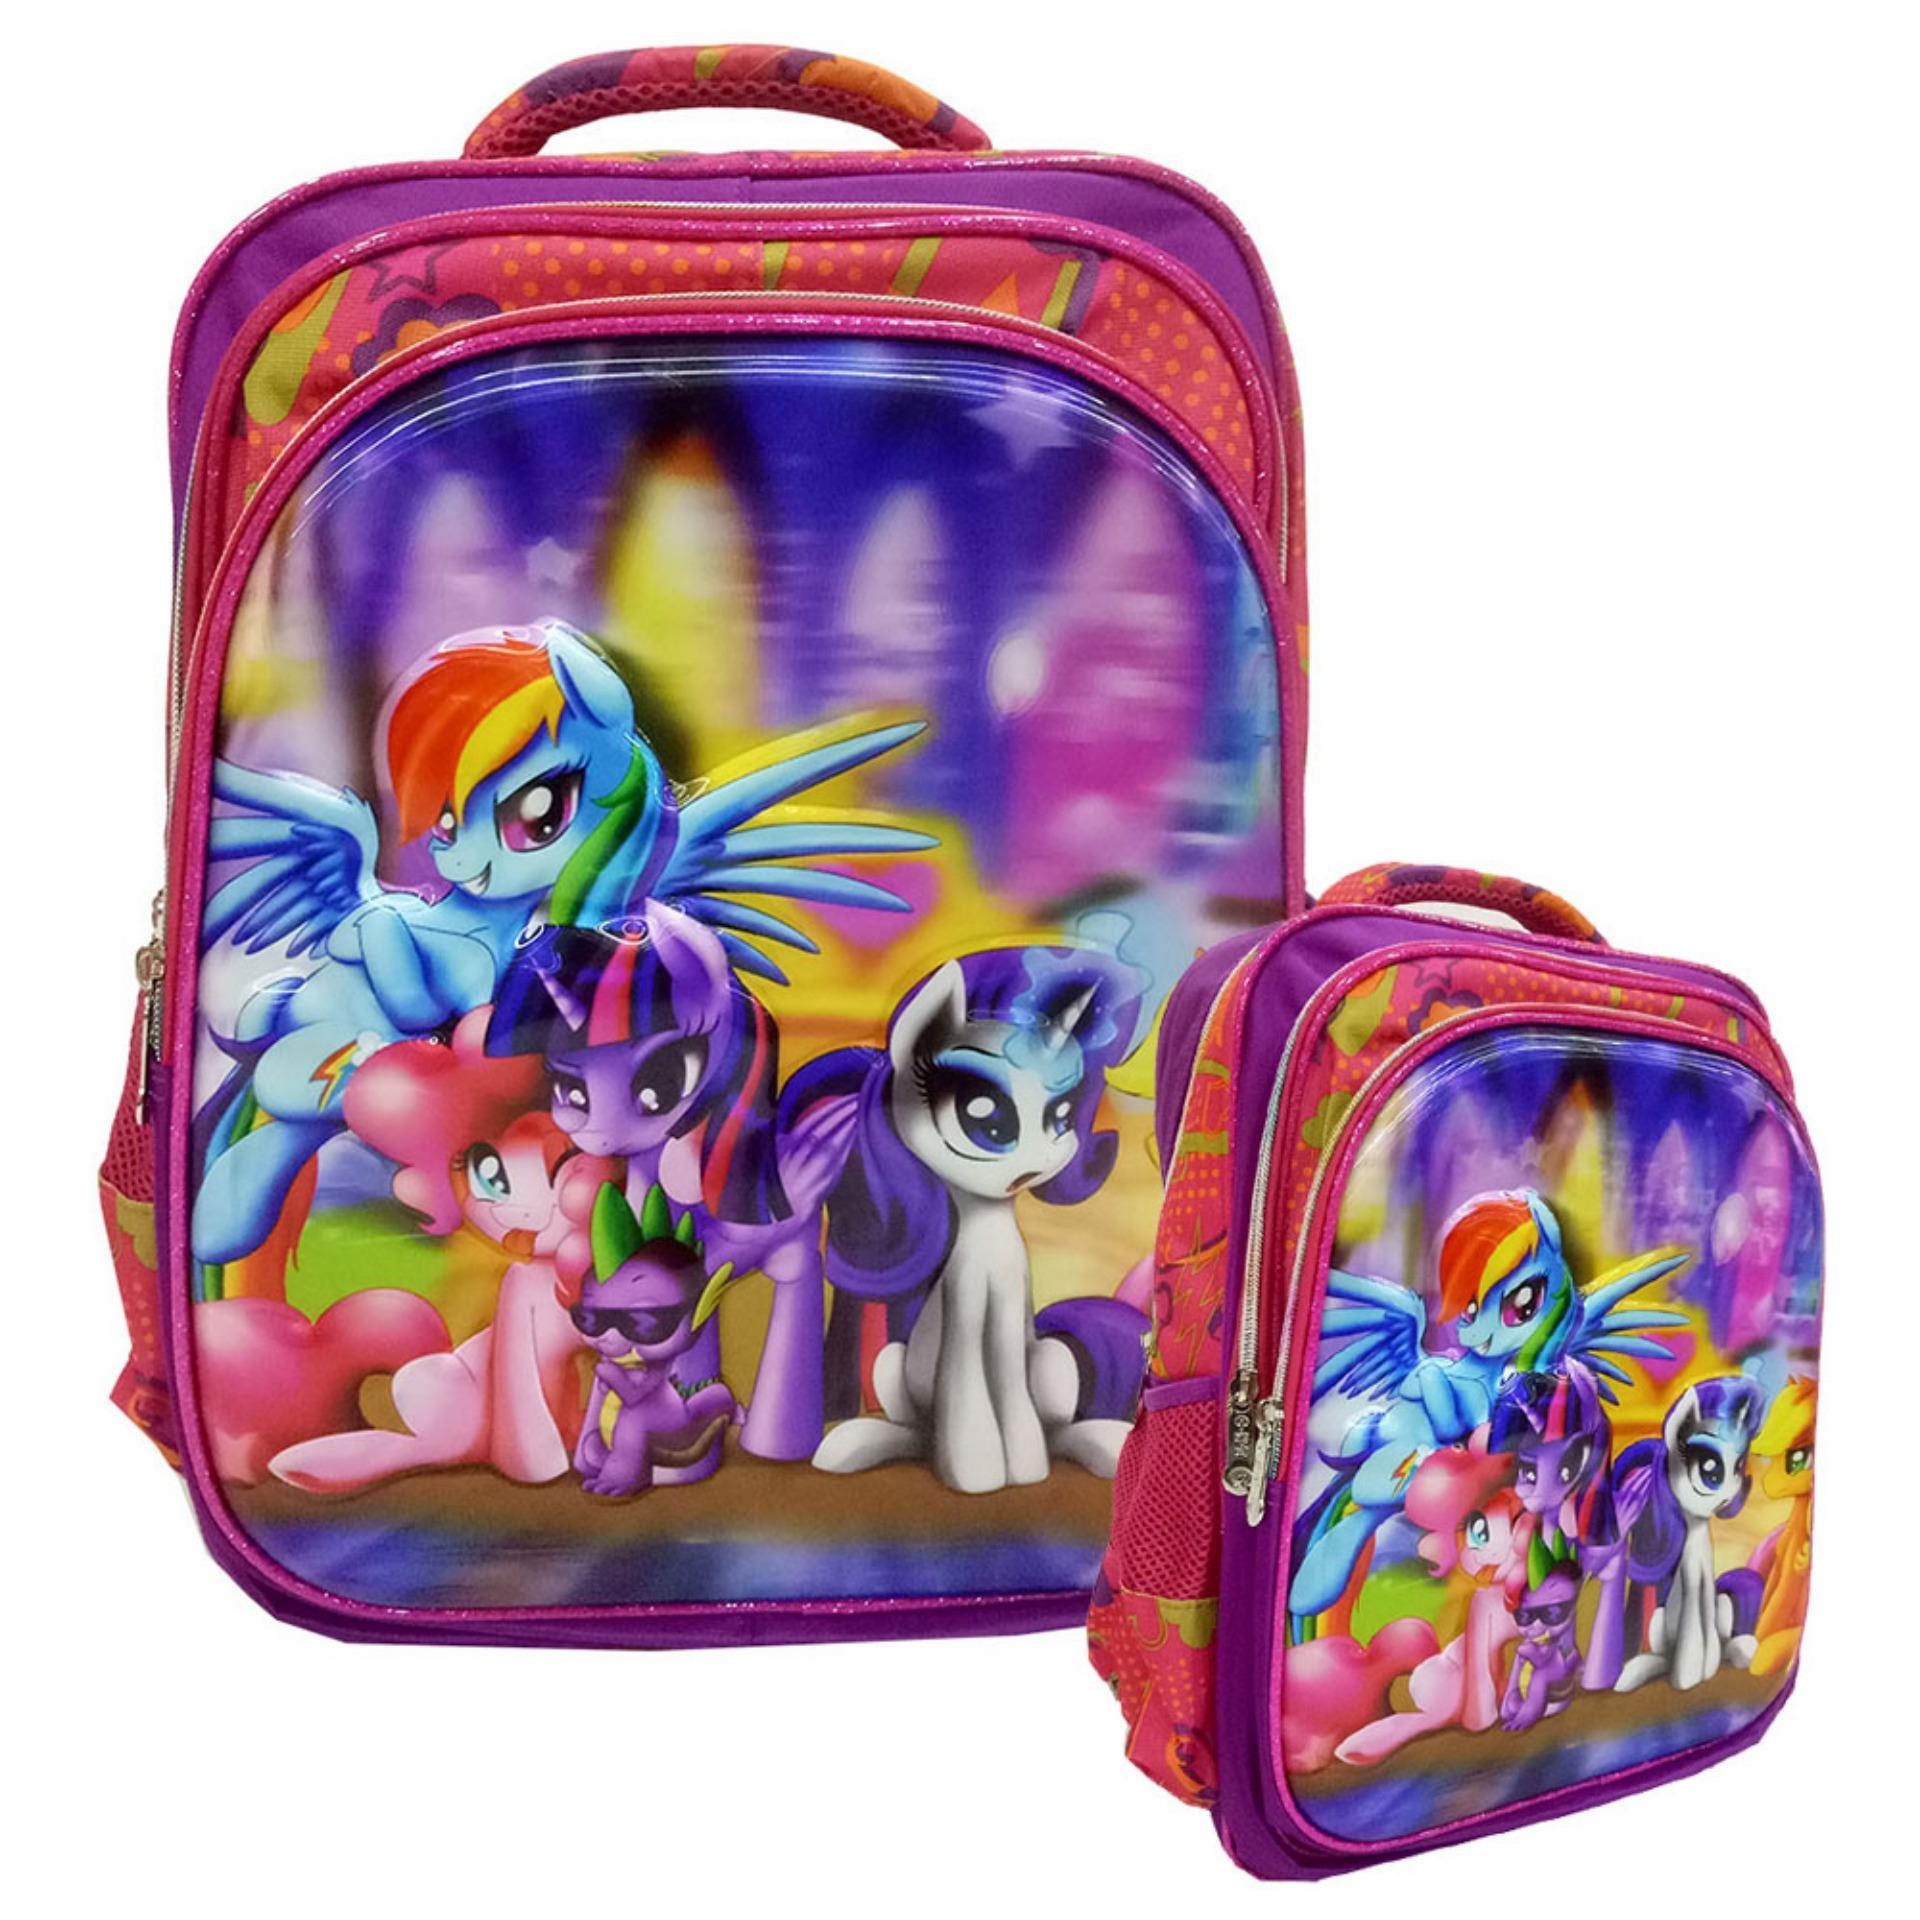 Model Onlan My Little Pony 5D Timbul Hologram Tas Ransel Anak Sd Import Purple Terbaru